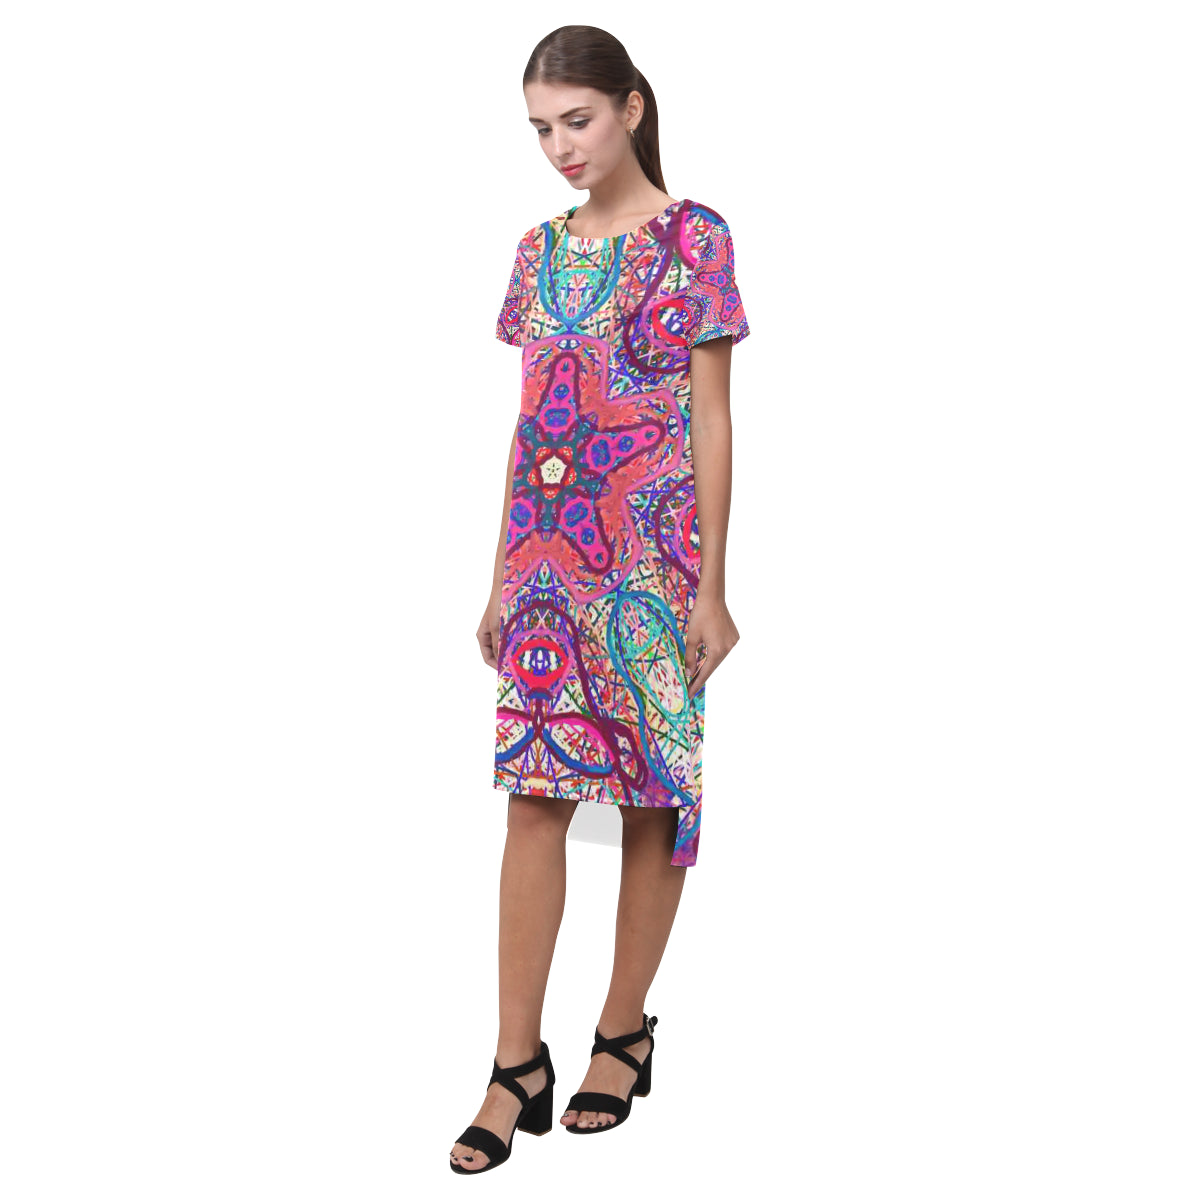 Thleudron Women's Mermaids Short Sleeves Casual Dress(Model D14) - Thleudron